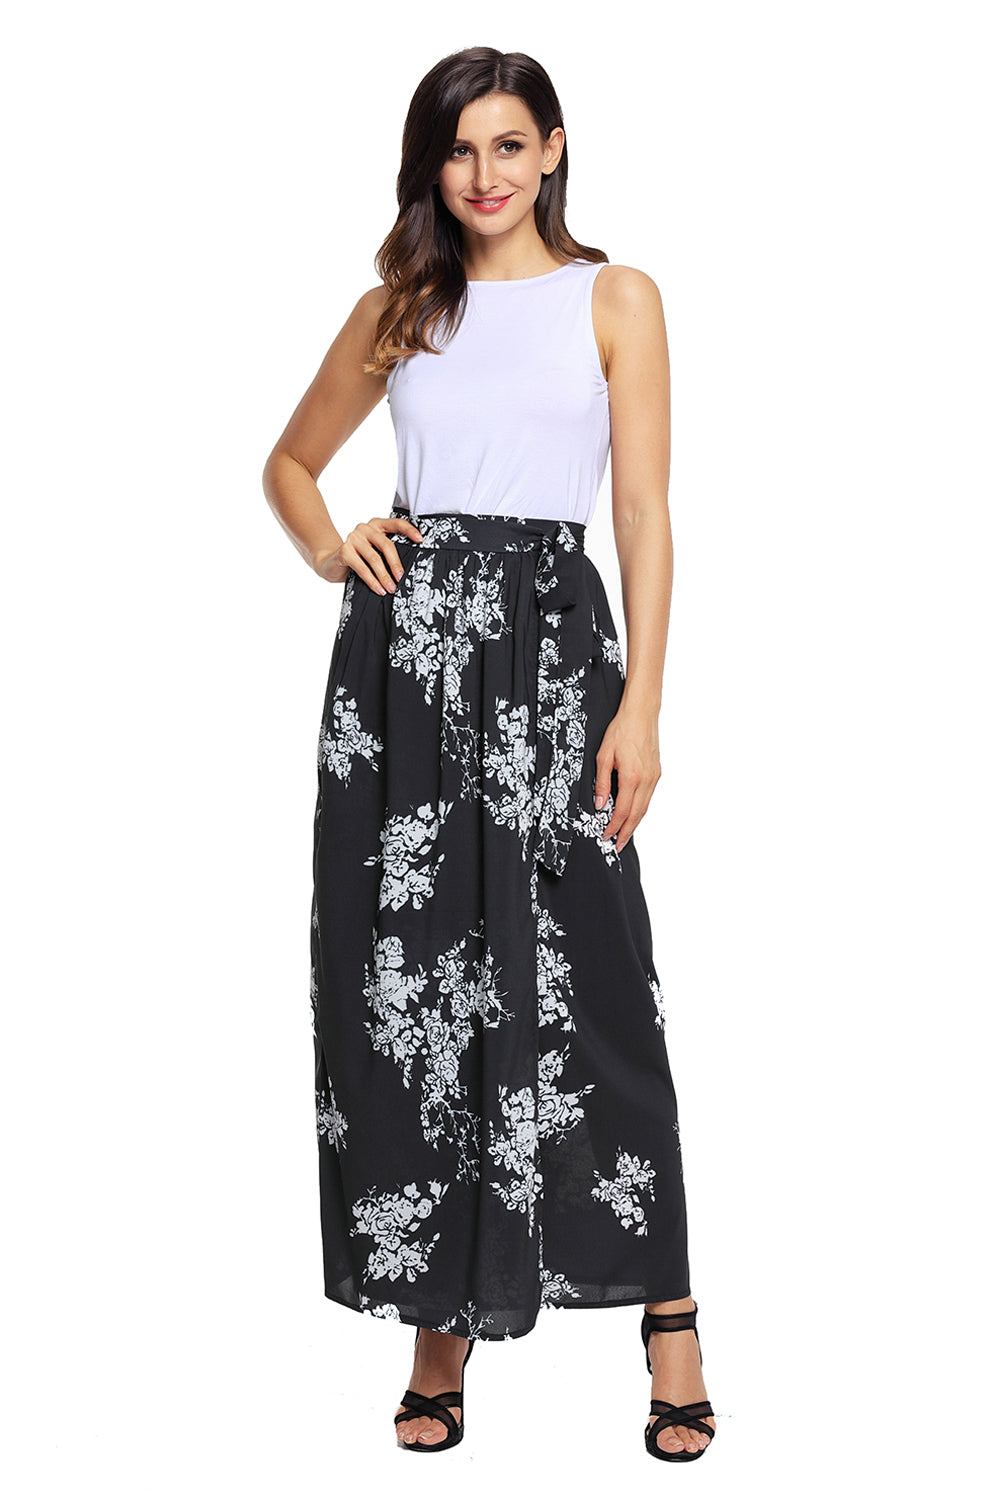 Black And White Maxi Skirt Outfit – DACC